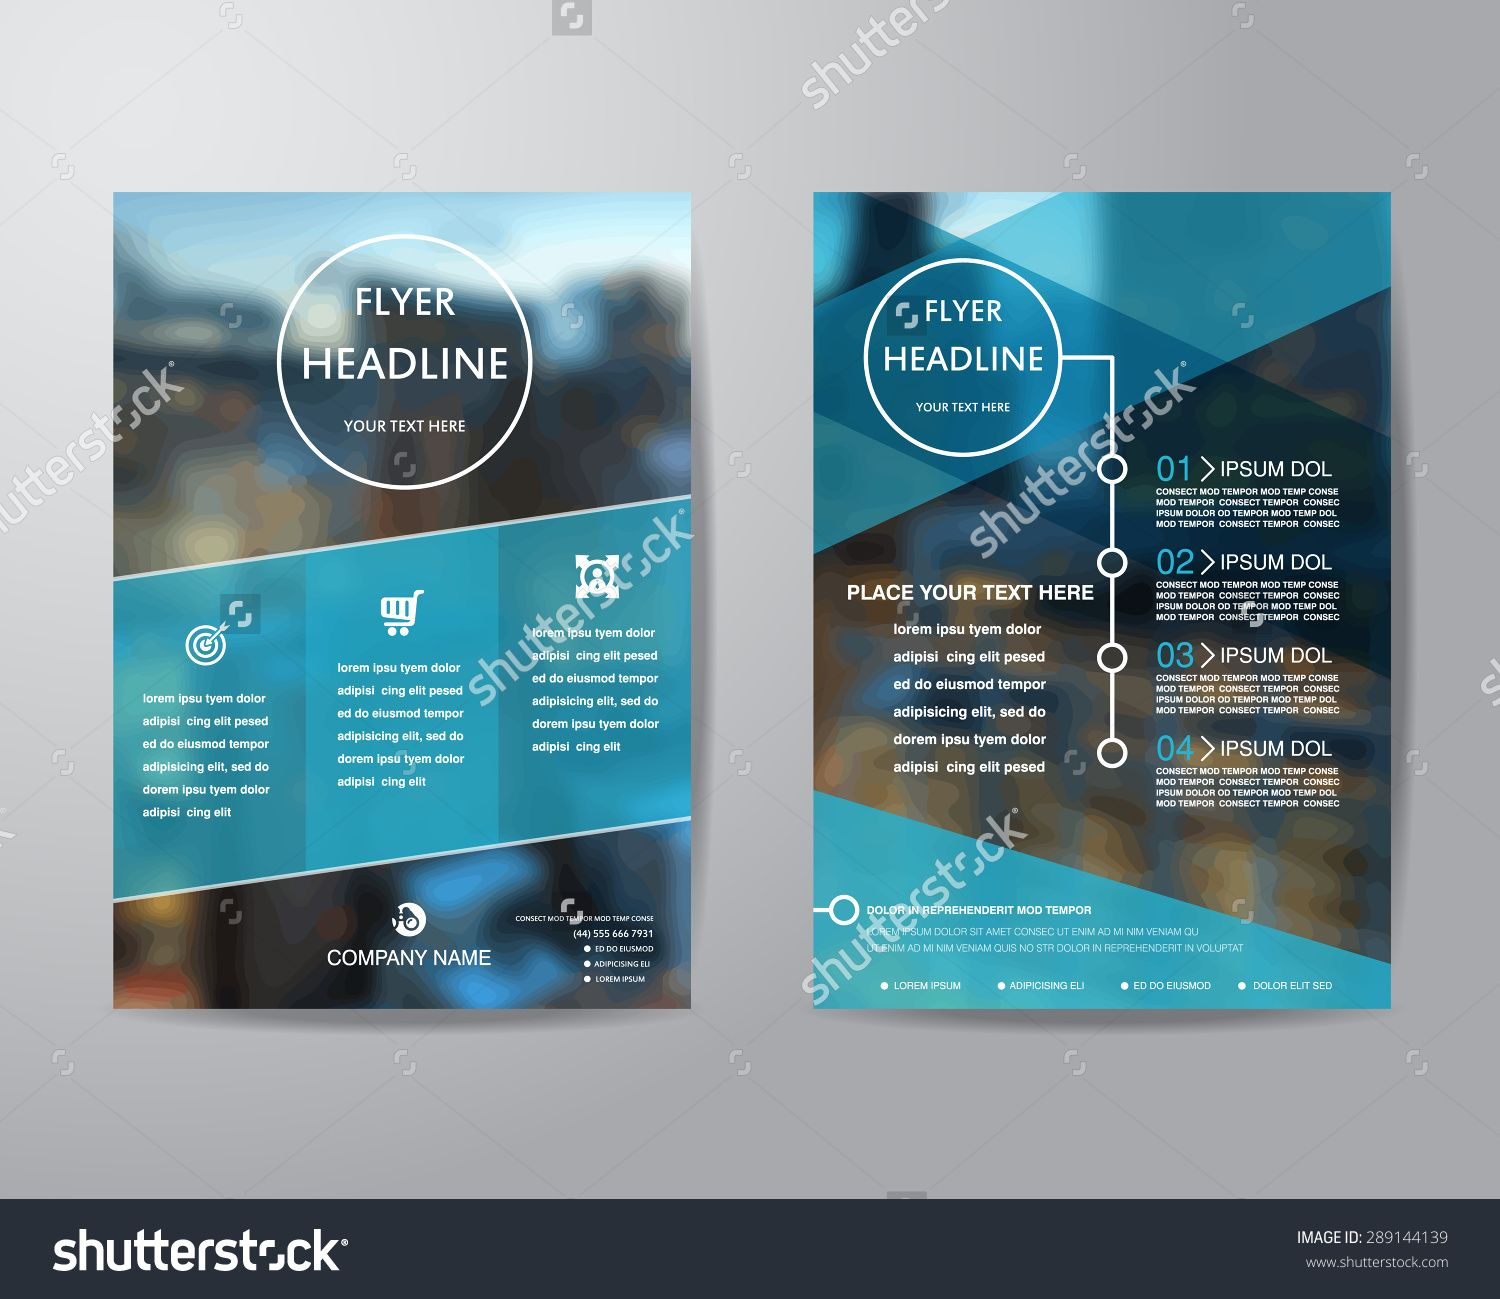 Business Brochure Flyer Design Layout Template In A4 Size, With Blur ...